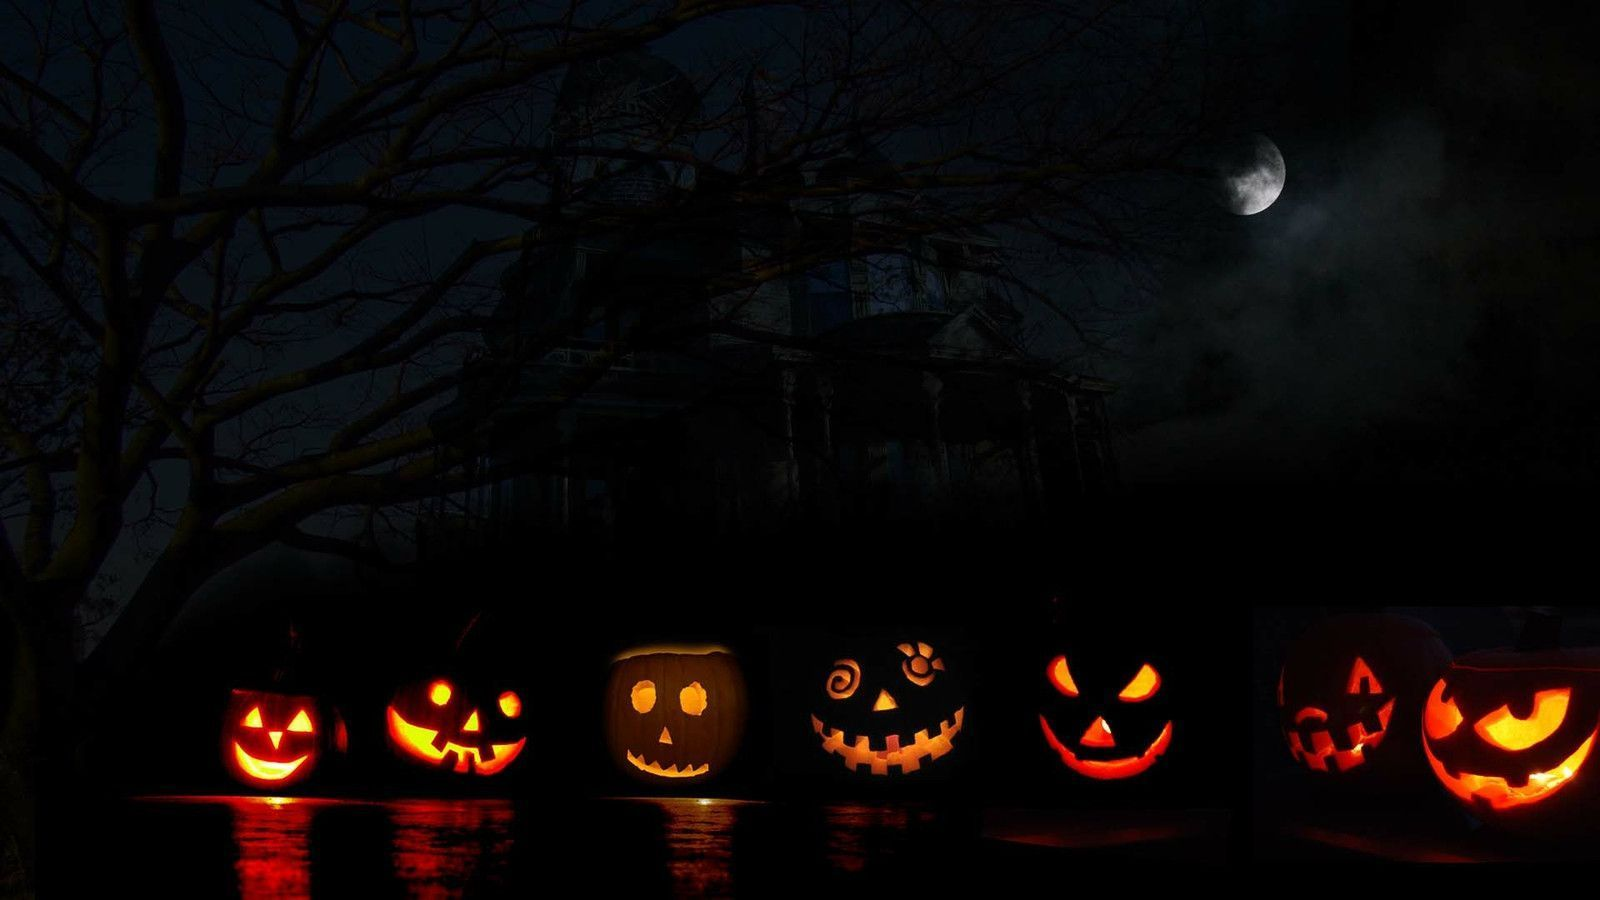 Free Animated Halloween Screensavers Free Halloween Desktop 1280 1024 Free Wall Halloween Desktop Wallpaper Halloween Wallpaper Backgrounds Pumpkin Wallpaper